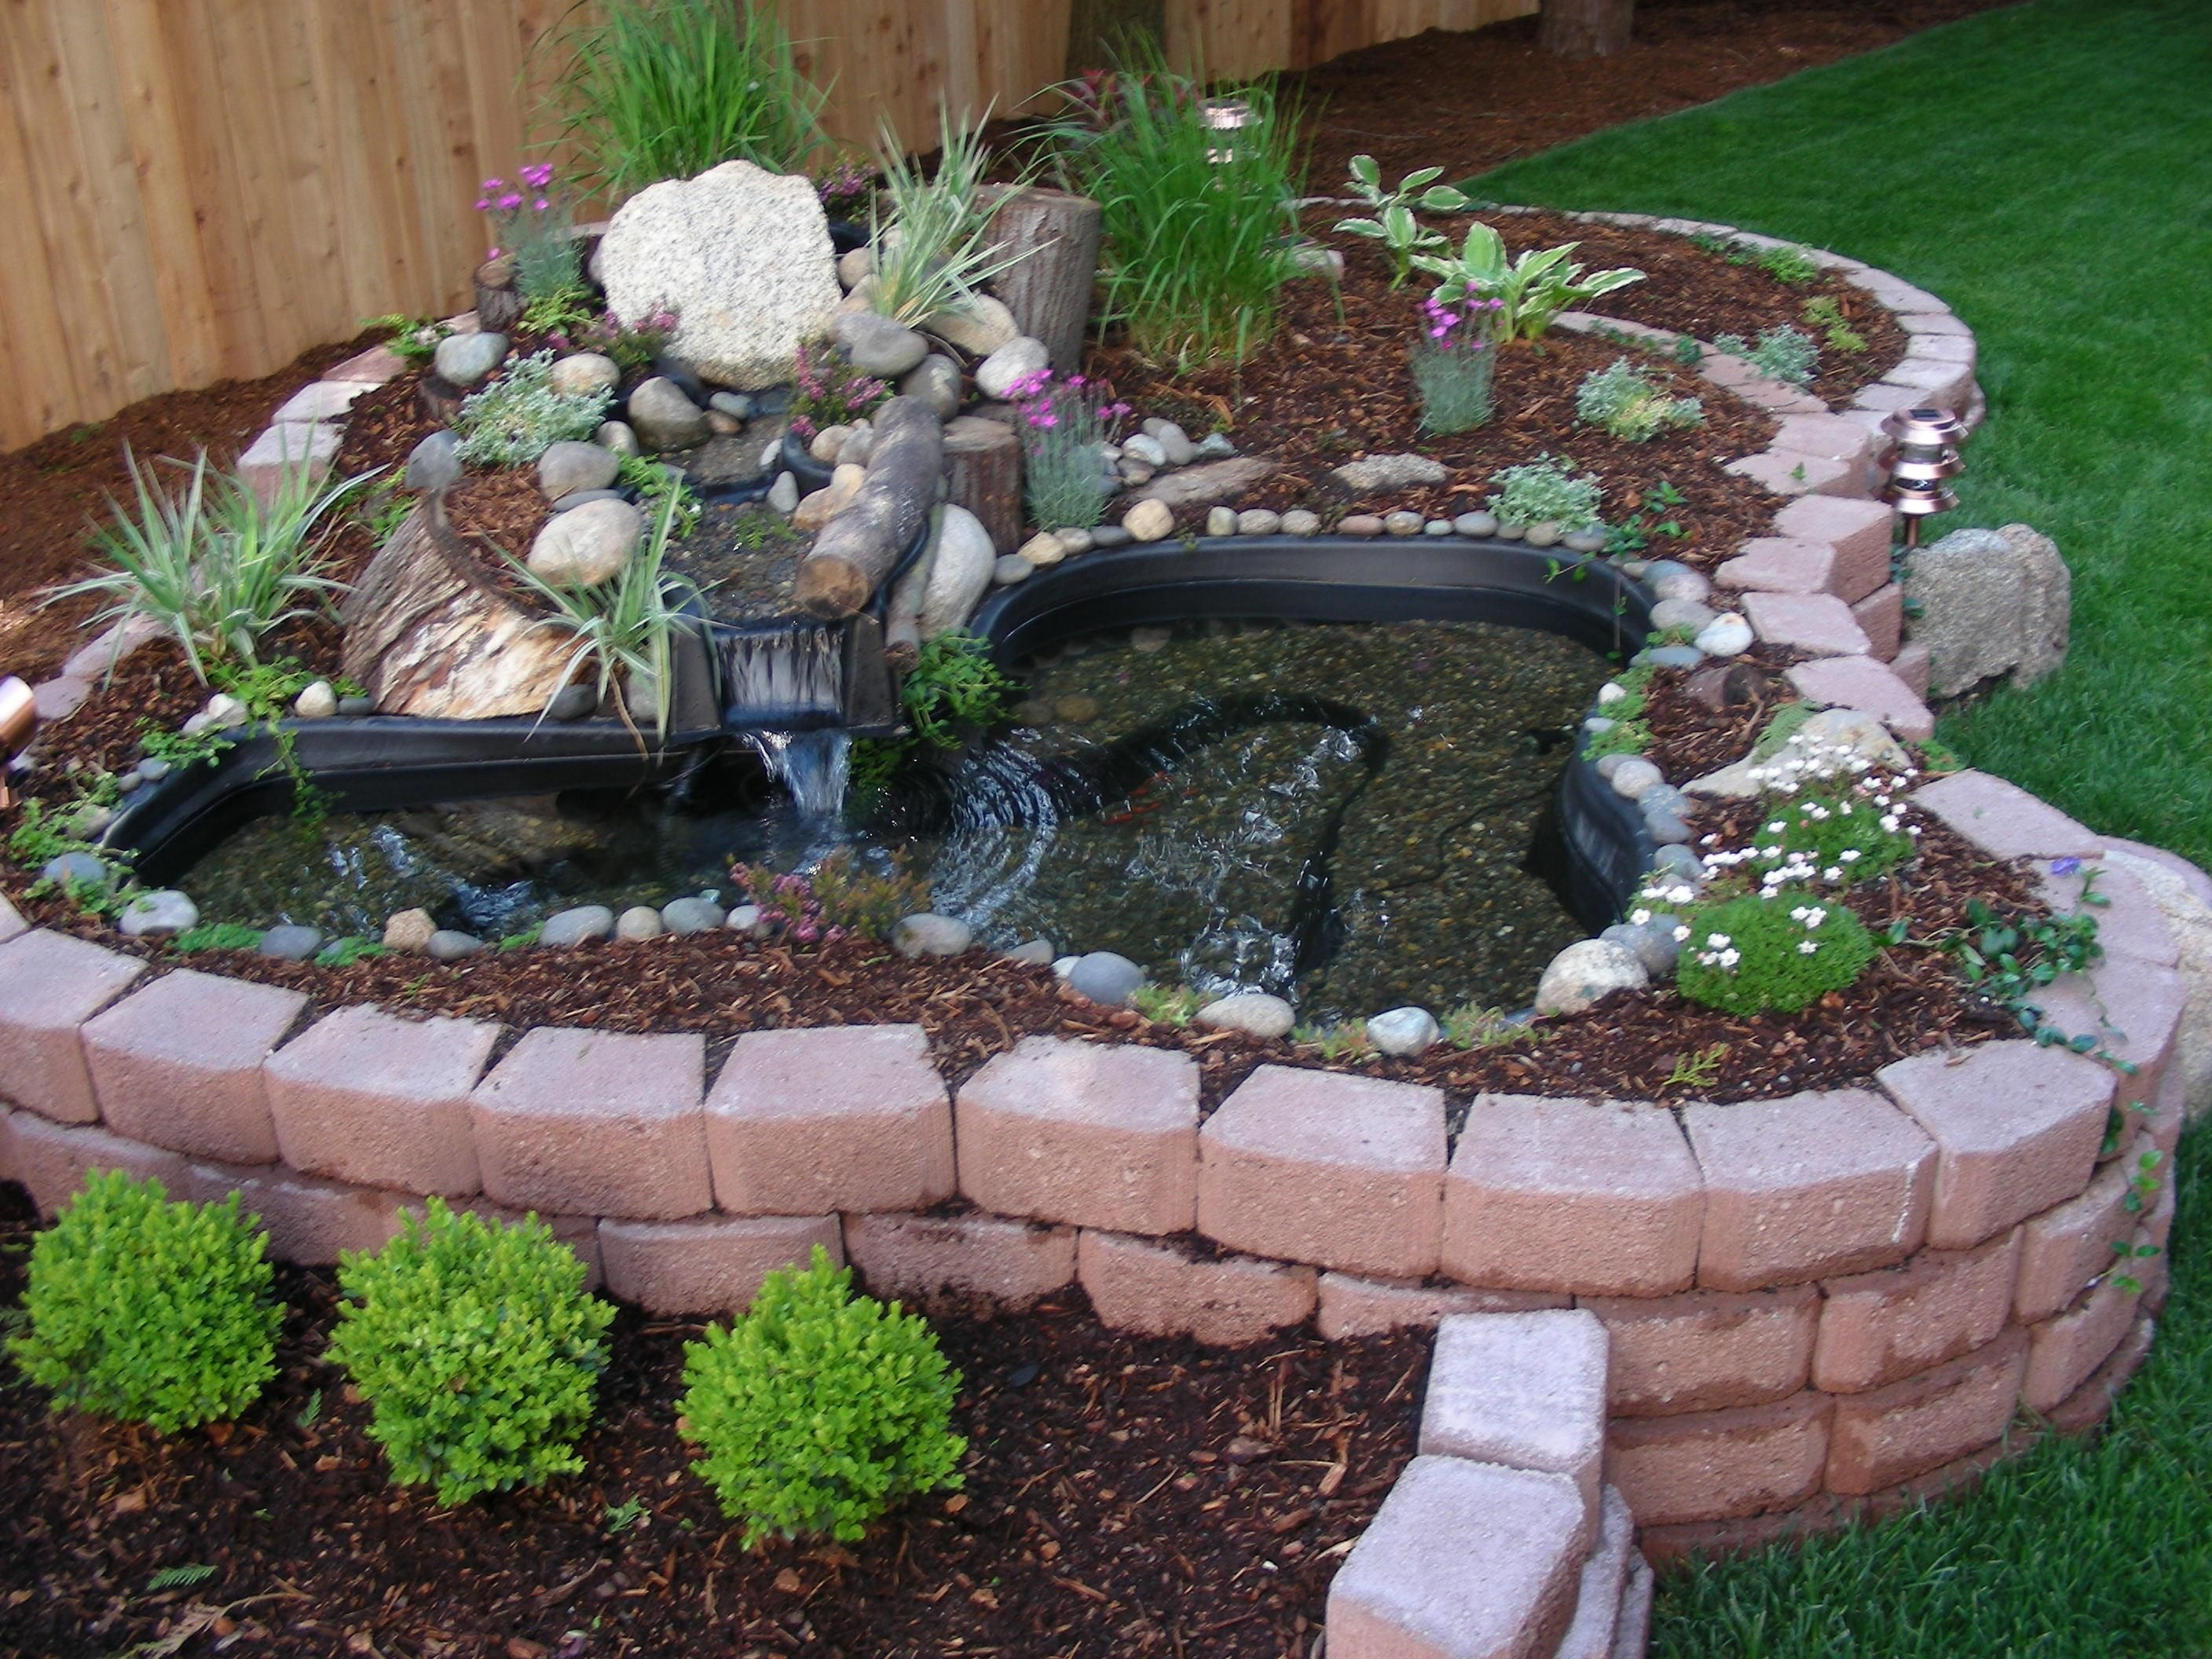 Ordinaire Above Ground Turtle Ponds For Backyards | SodaHead.com   Bill.fleming.77